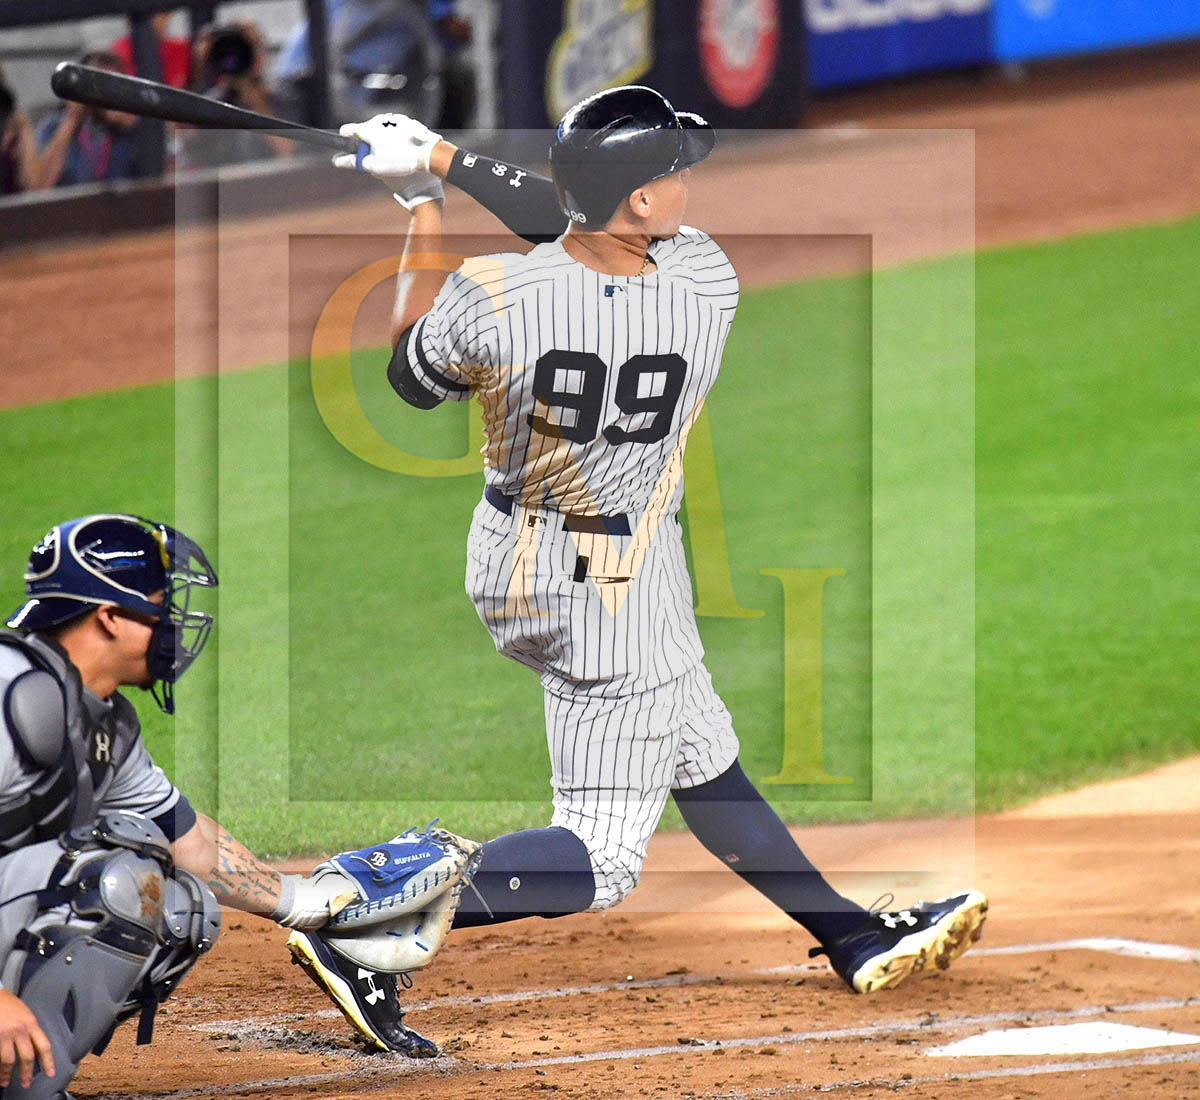 Yankees break MLB record for most home runs in a season